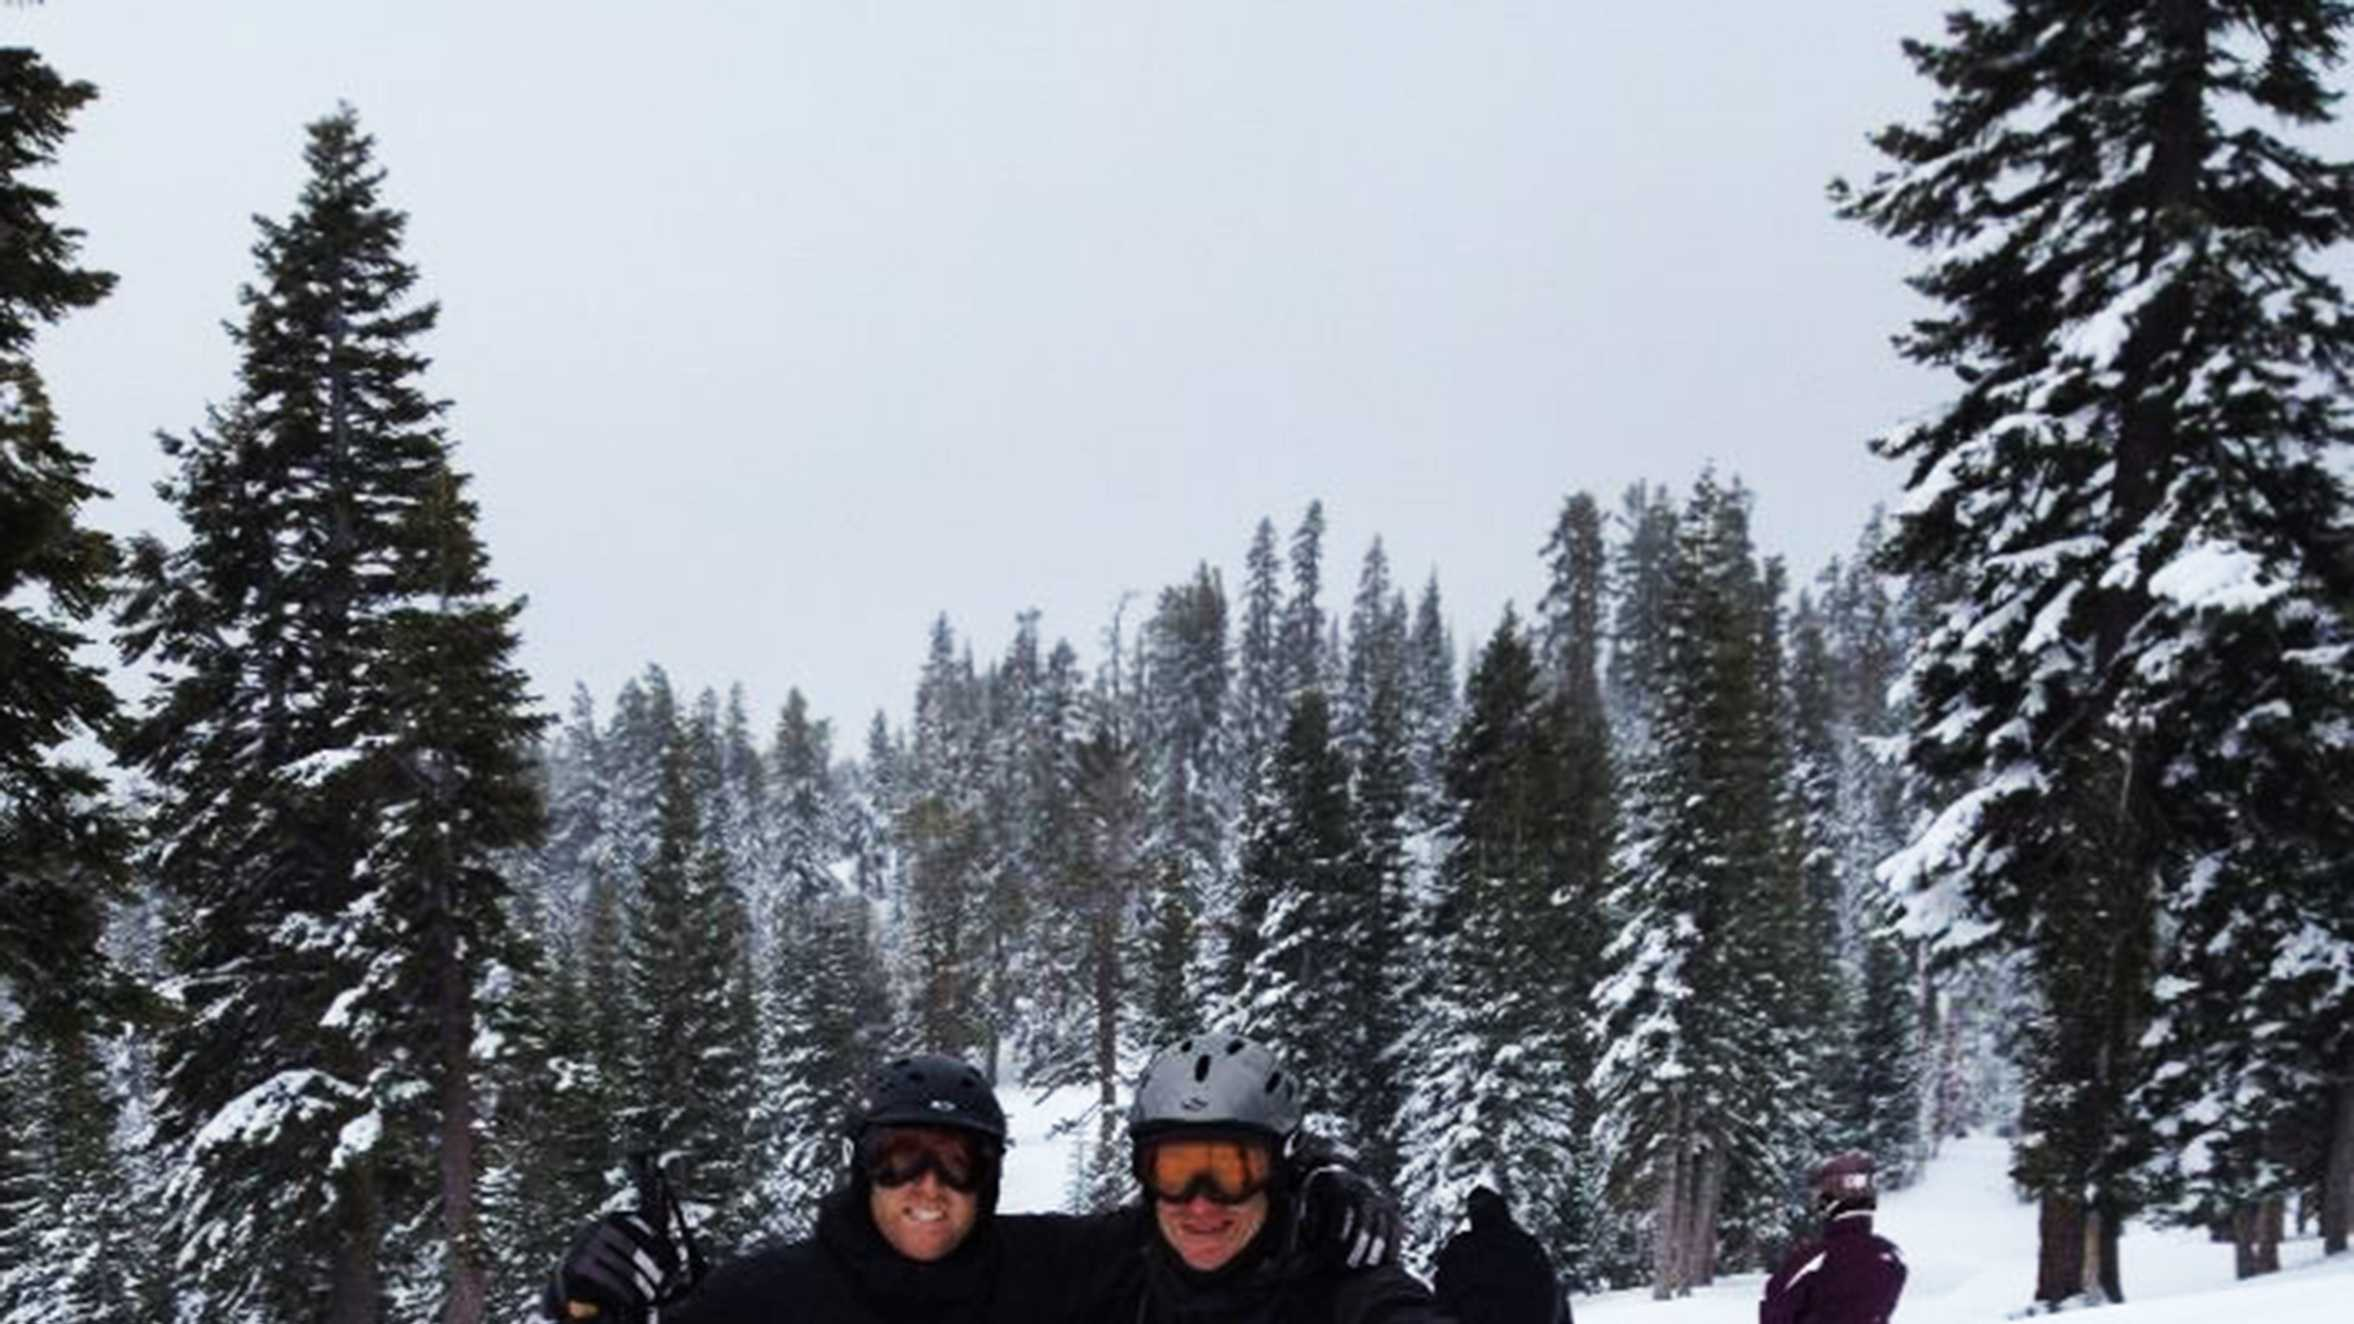 KSBW Weatherman Lee Solomon, left, hit the slopes above Lake Tahoe on March 1, 2014 with friends.